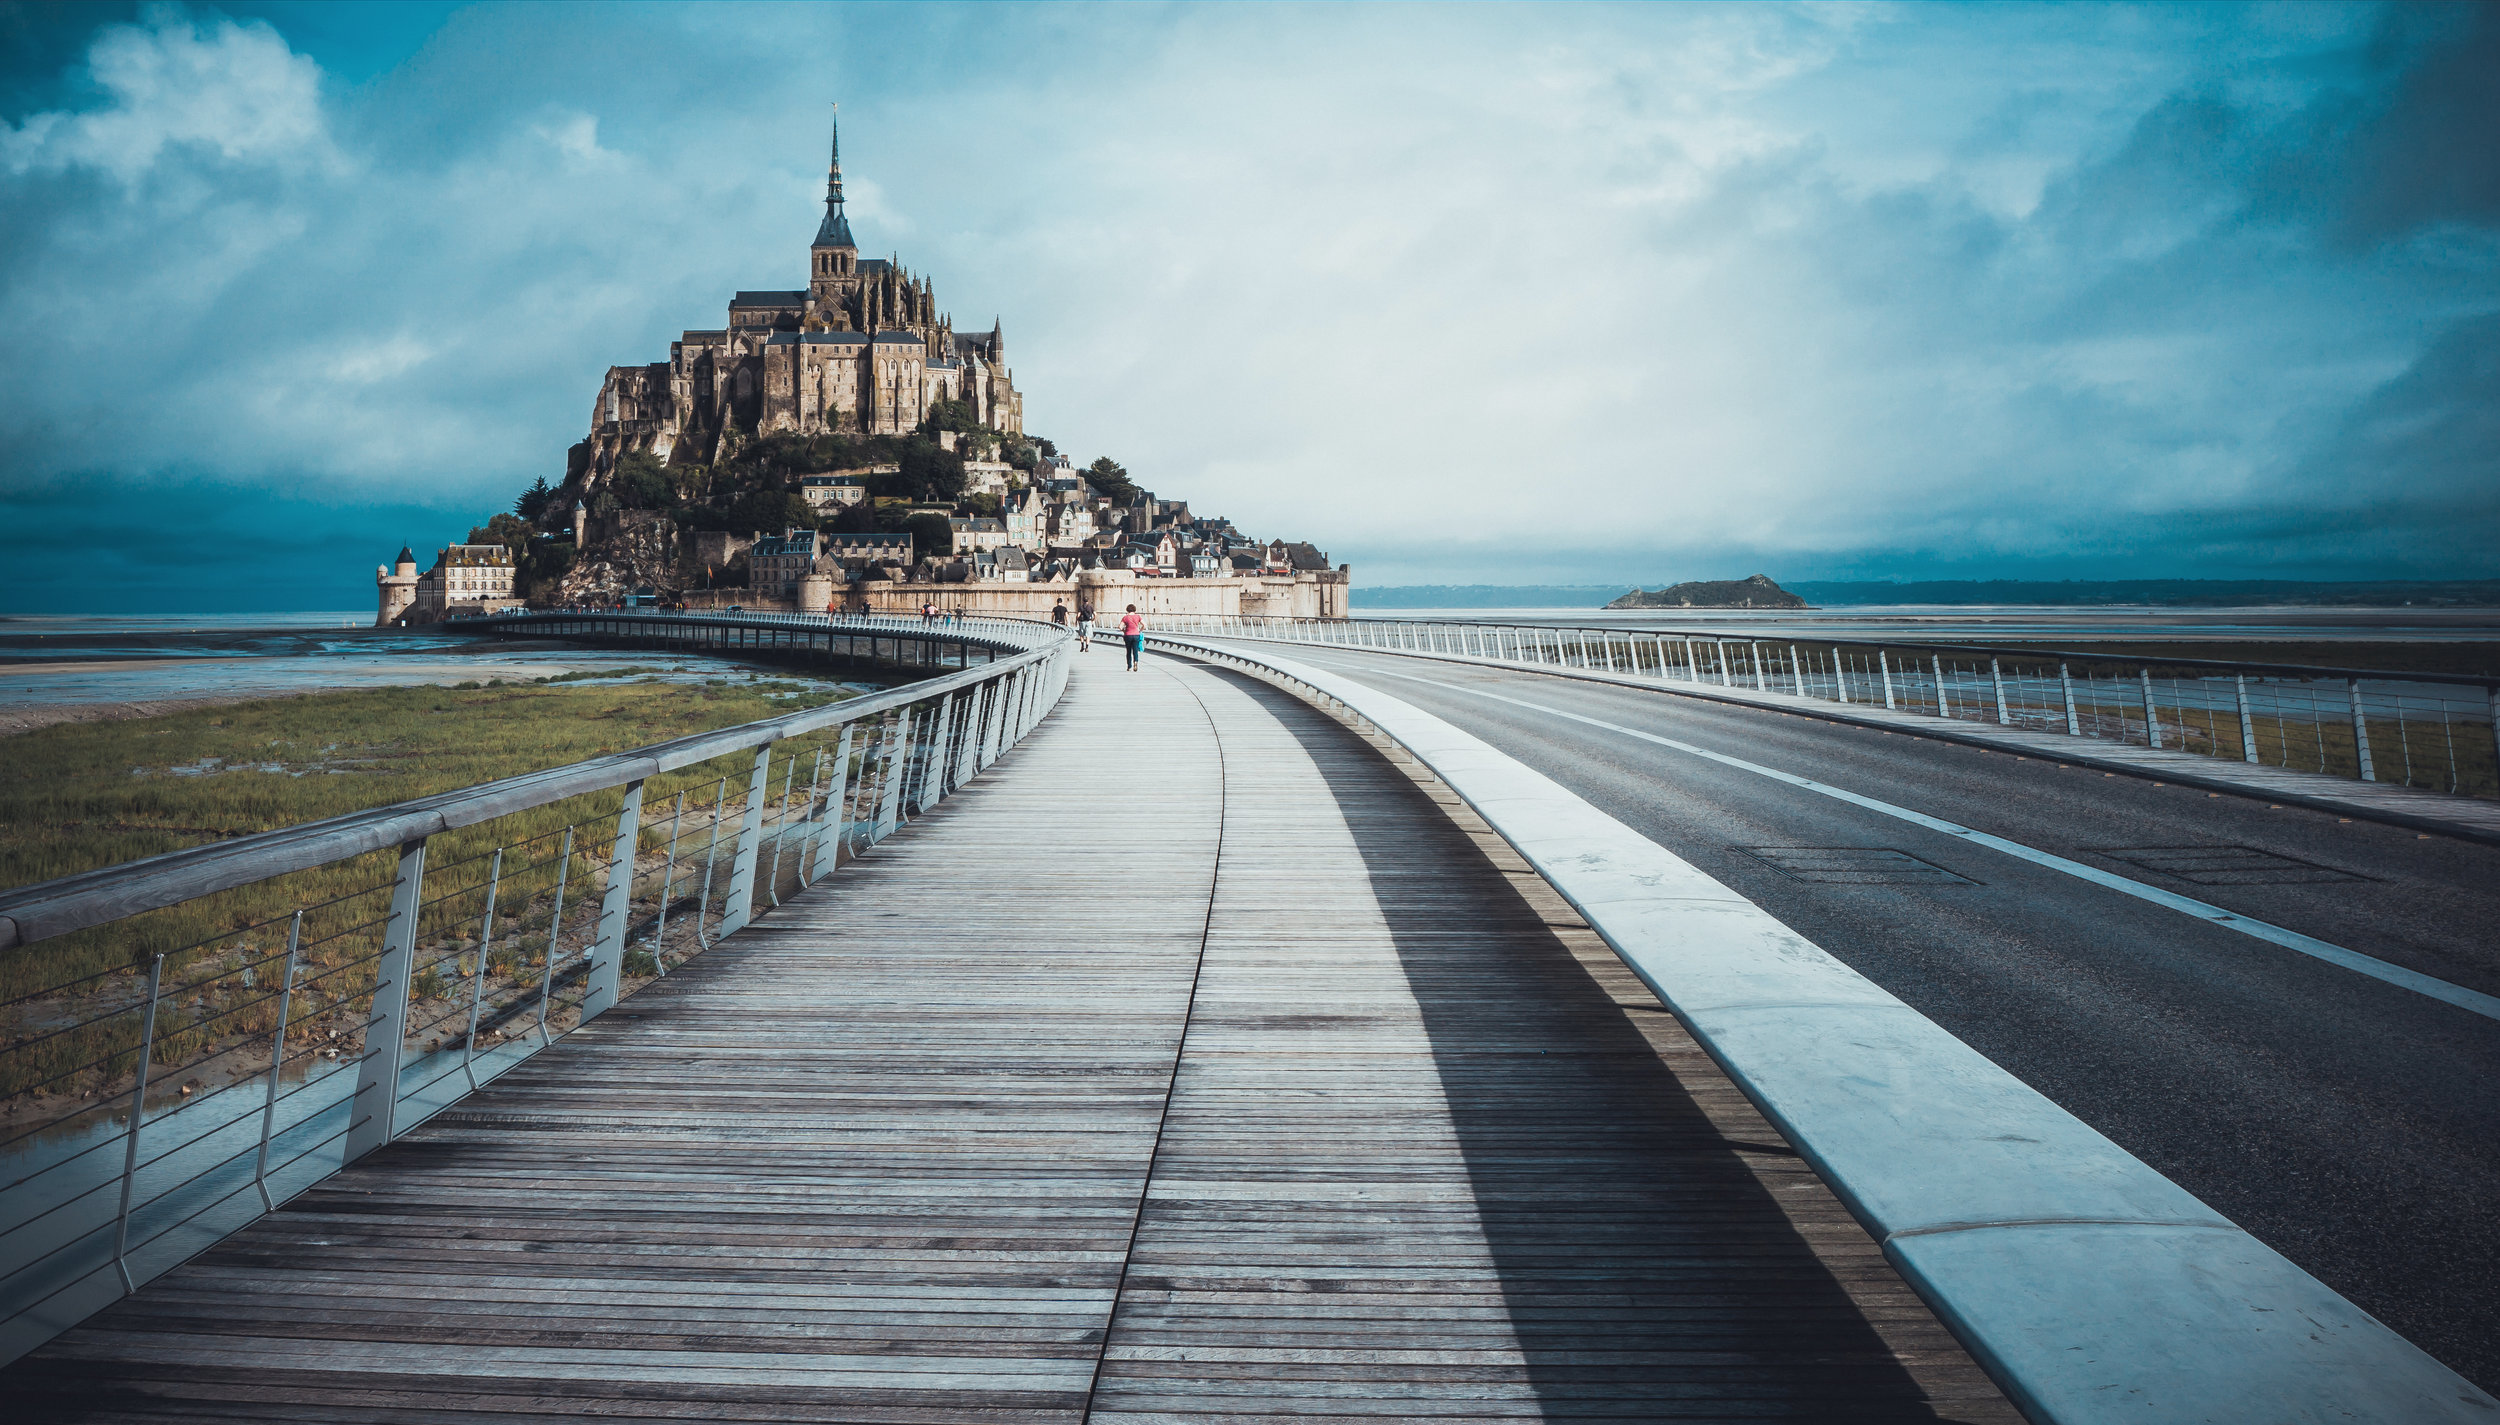 Mont Saint Michele, Normandy, France - Apply soon for Pilgrim Project France, Aug 9-18, to visit this incredible place!